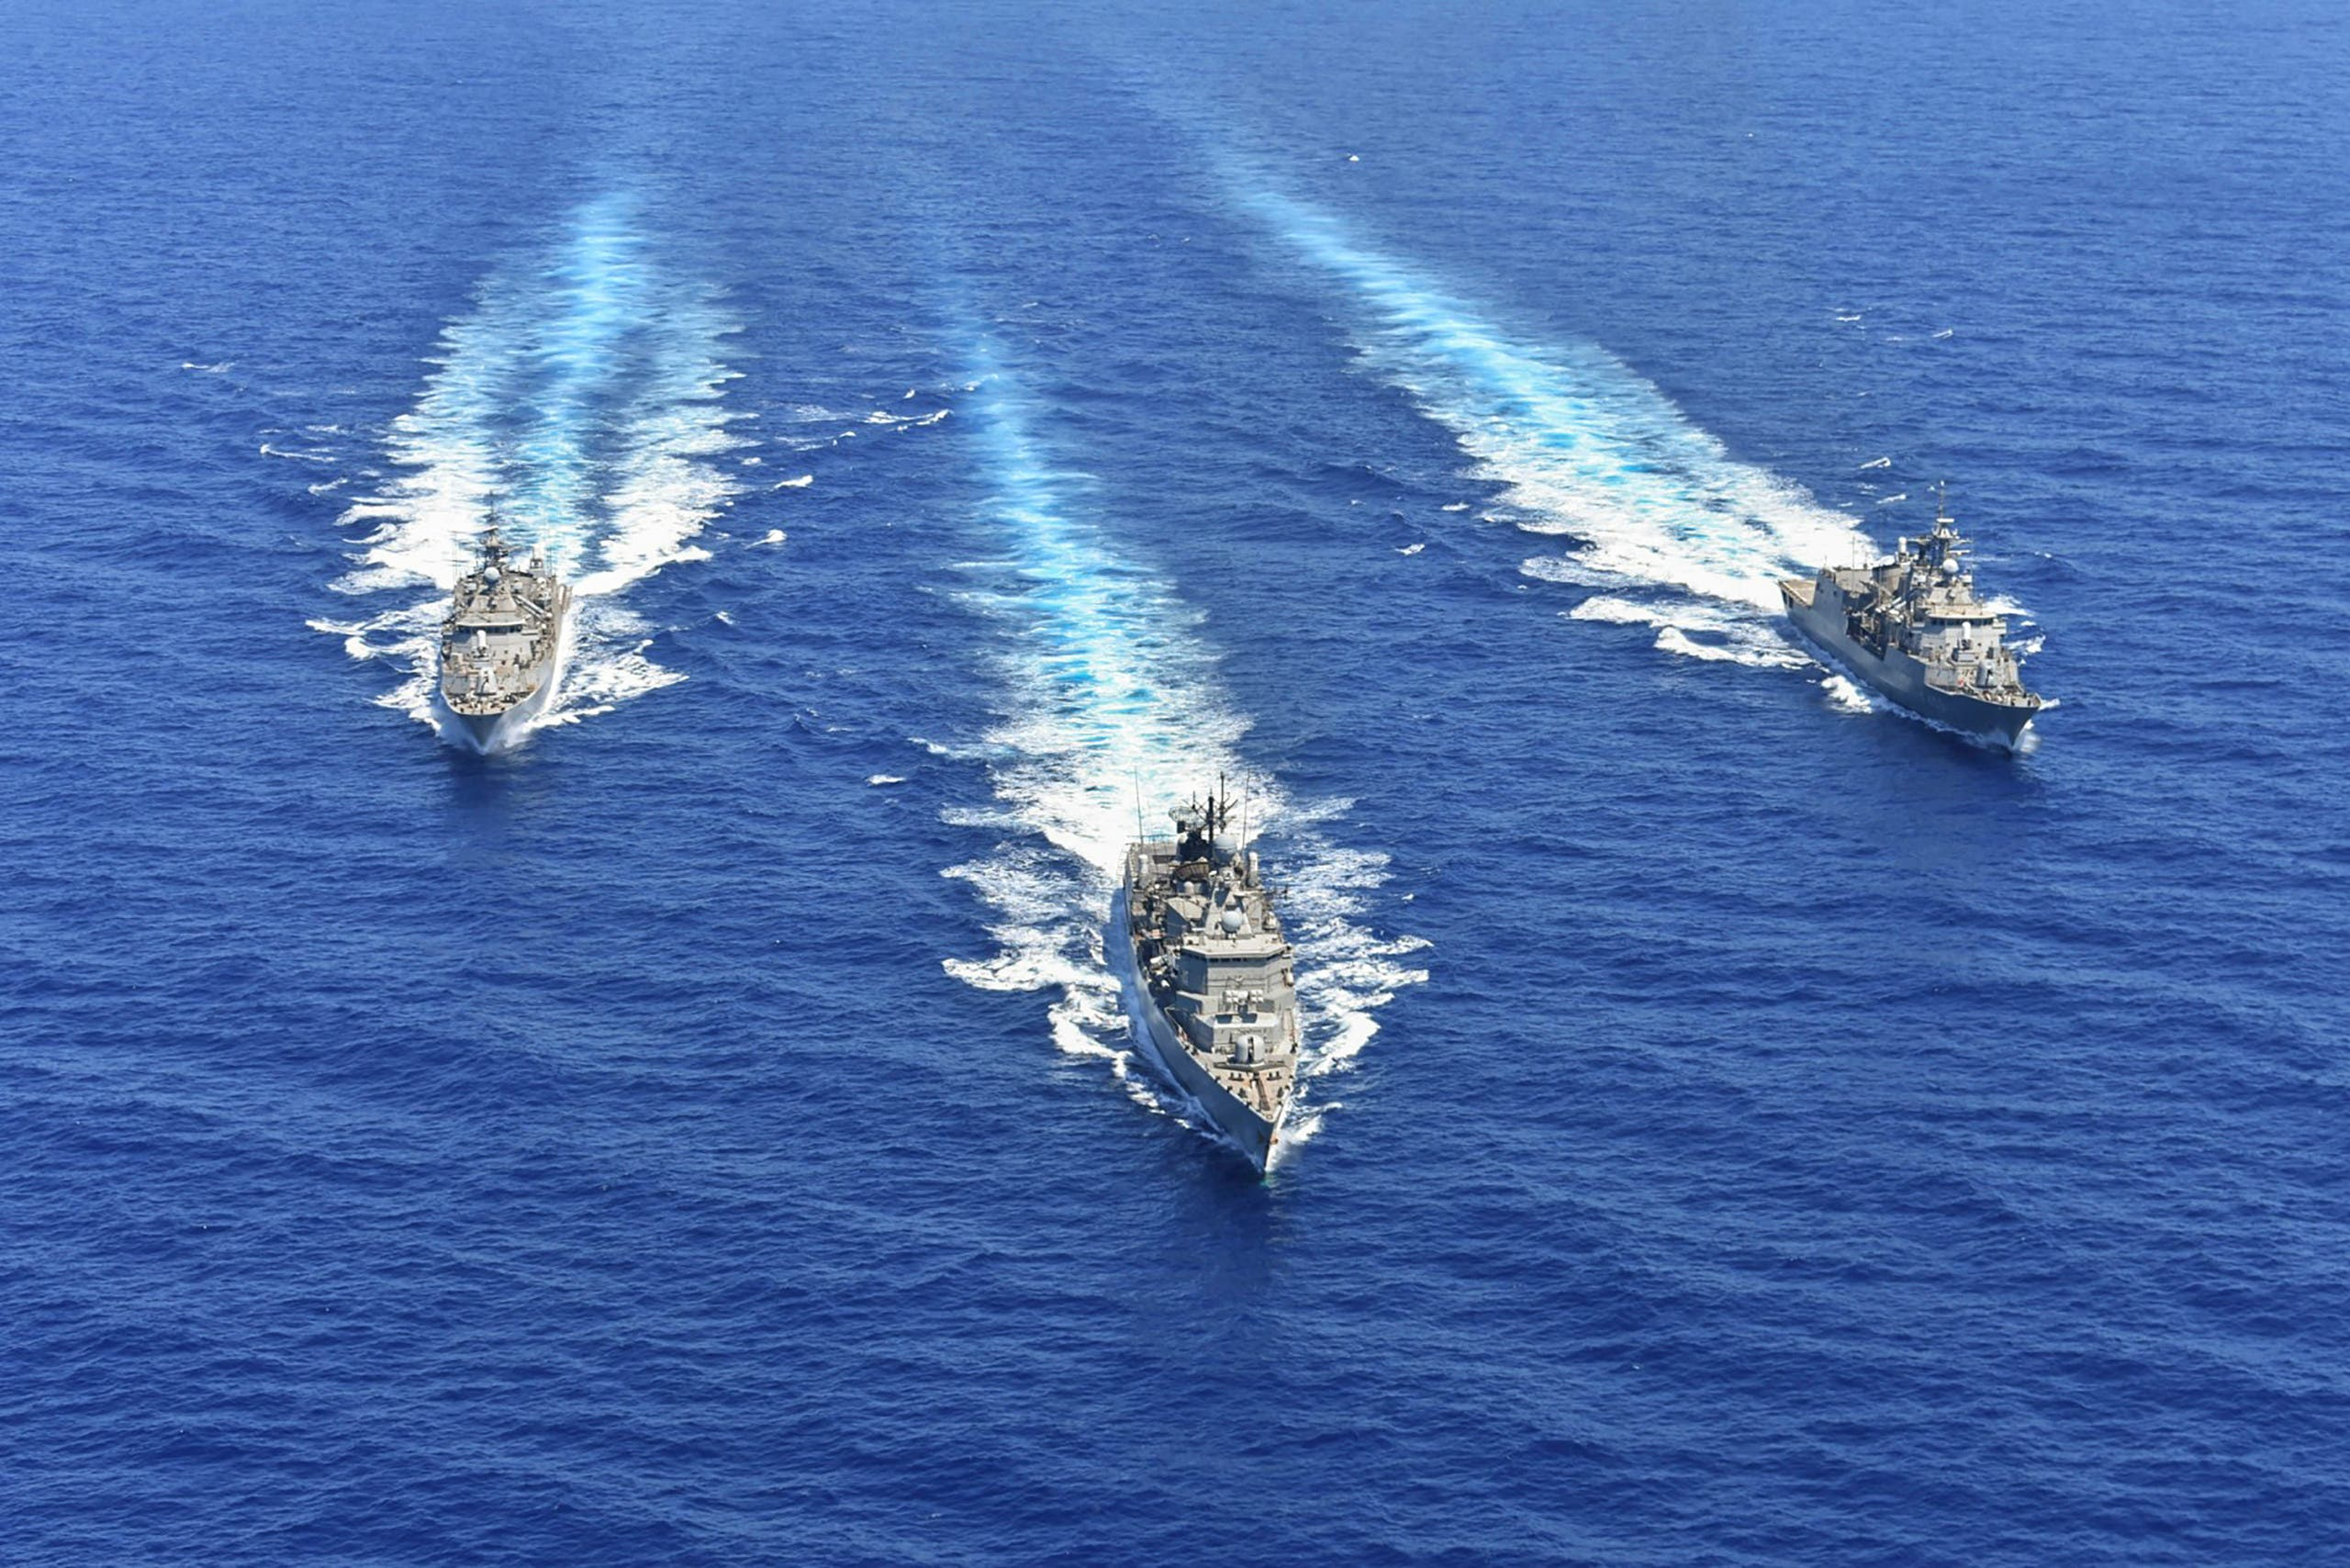 A handout photo released by the Greek National Defence Ministry on August 26, 2020 shows ships of the Hellenic Navy taking part in a military exercise in the eastern Mediterranean Sea, on August 25, 2020.